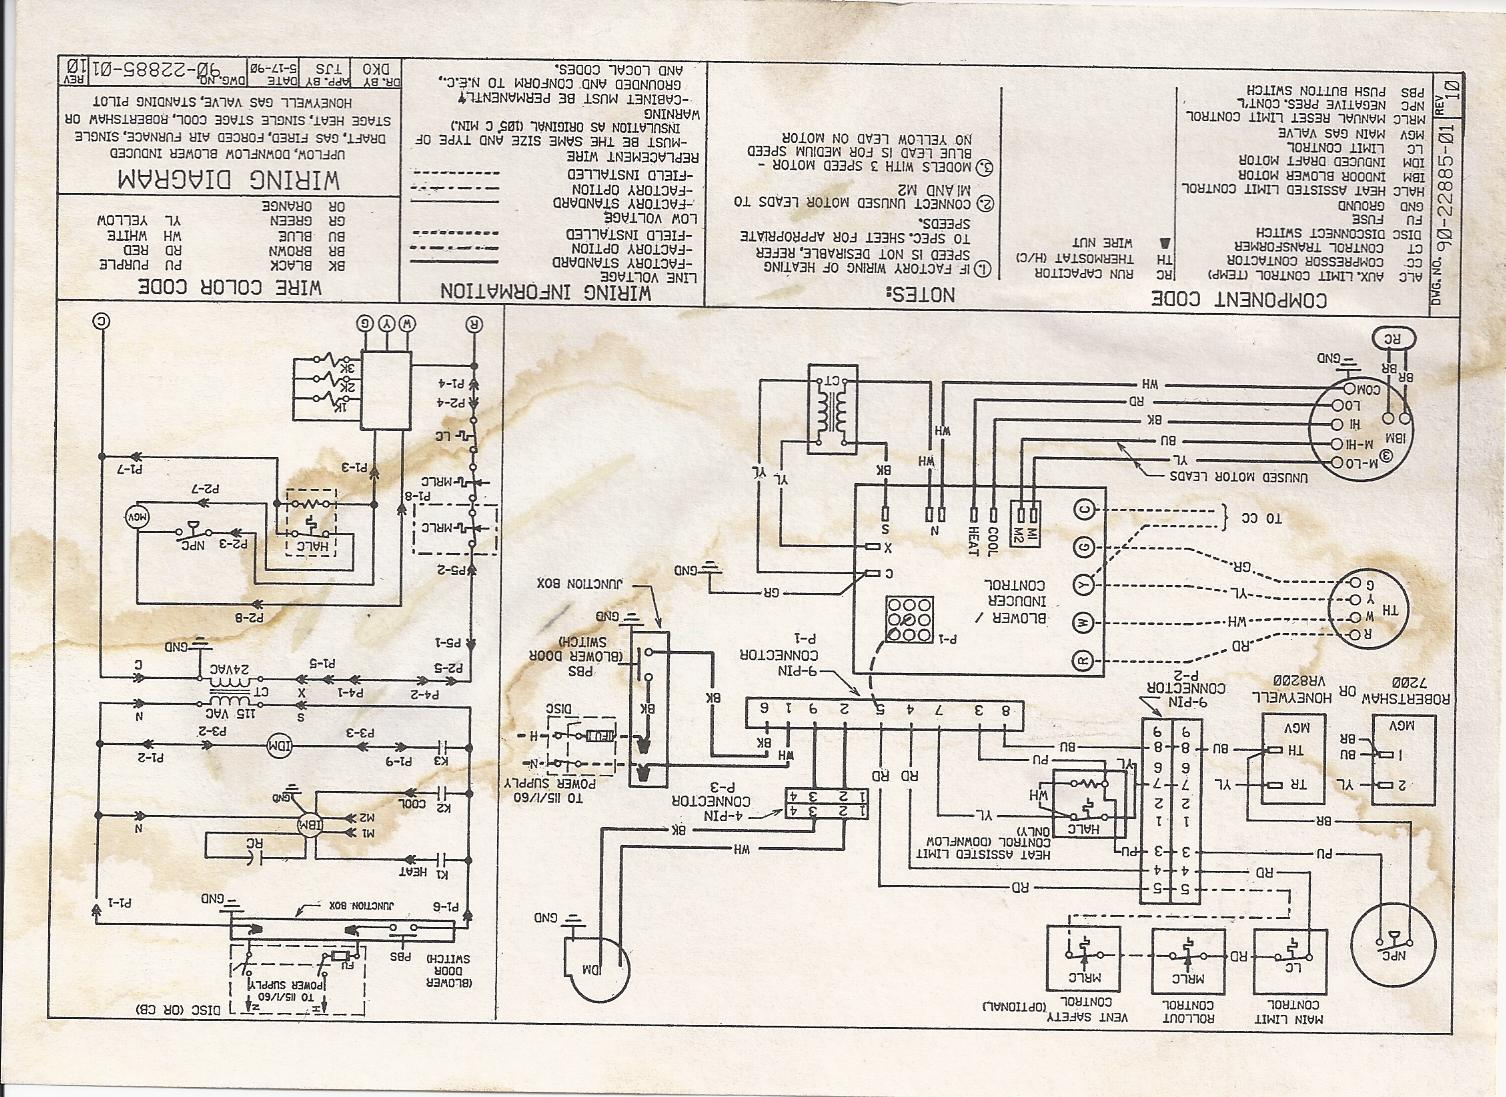 old york furnace wiring diagram old icp furnace wiring diagram my ruud indoor blower runs all the time, i have been told ... #1